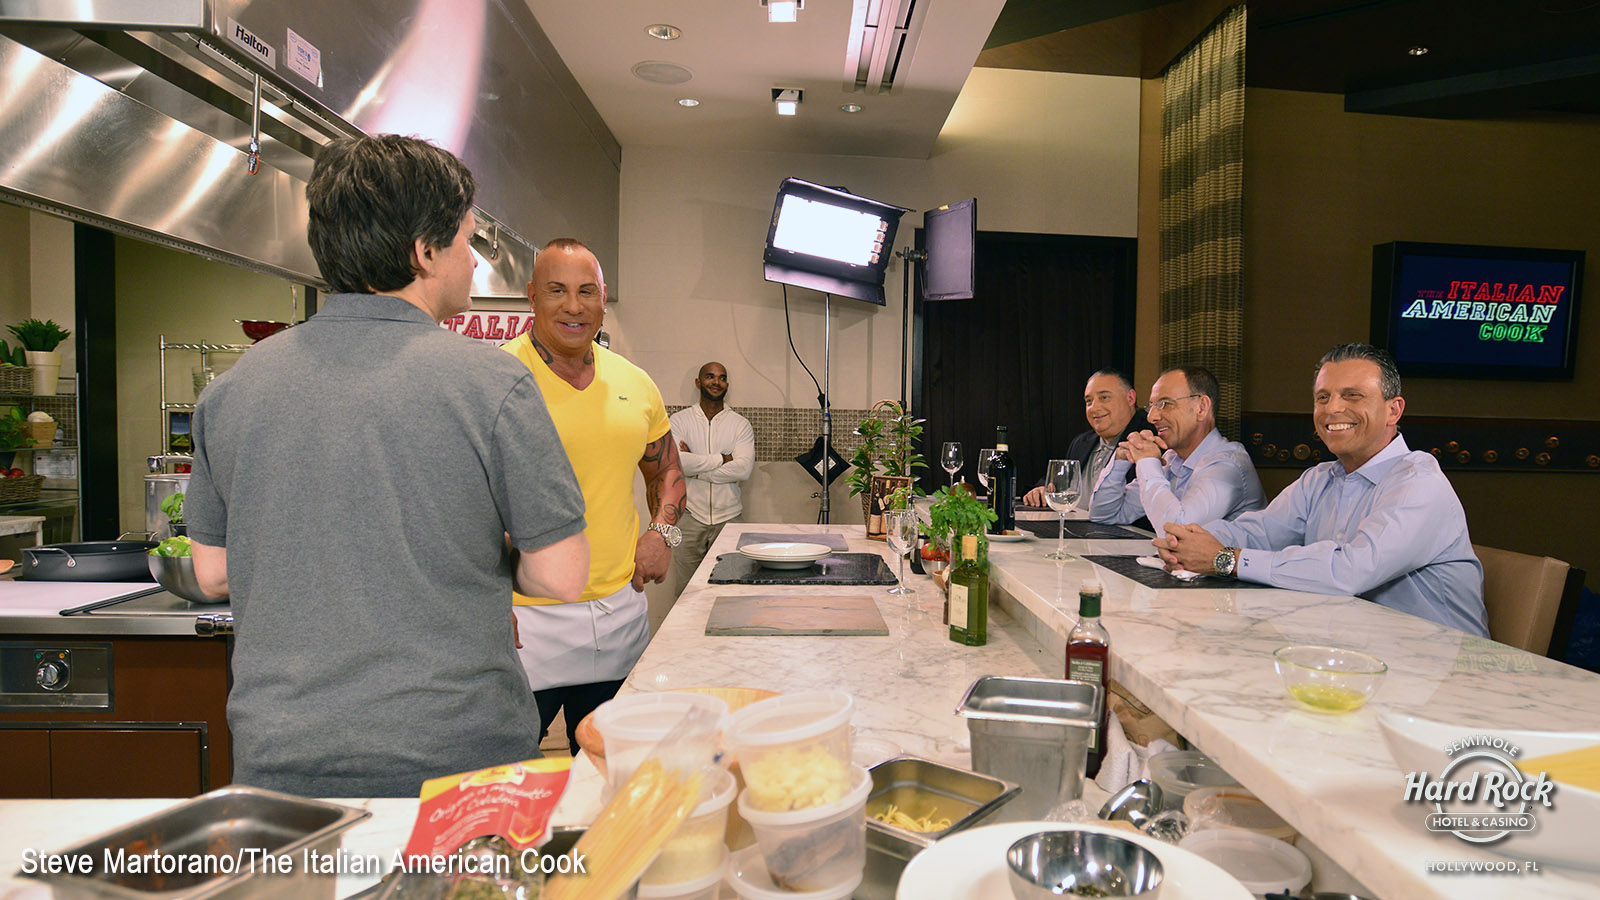 Steve Martorano Brings Italian-American Cuisine To The Small Screen